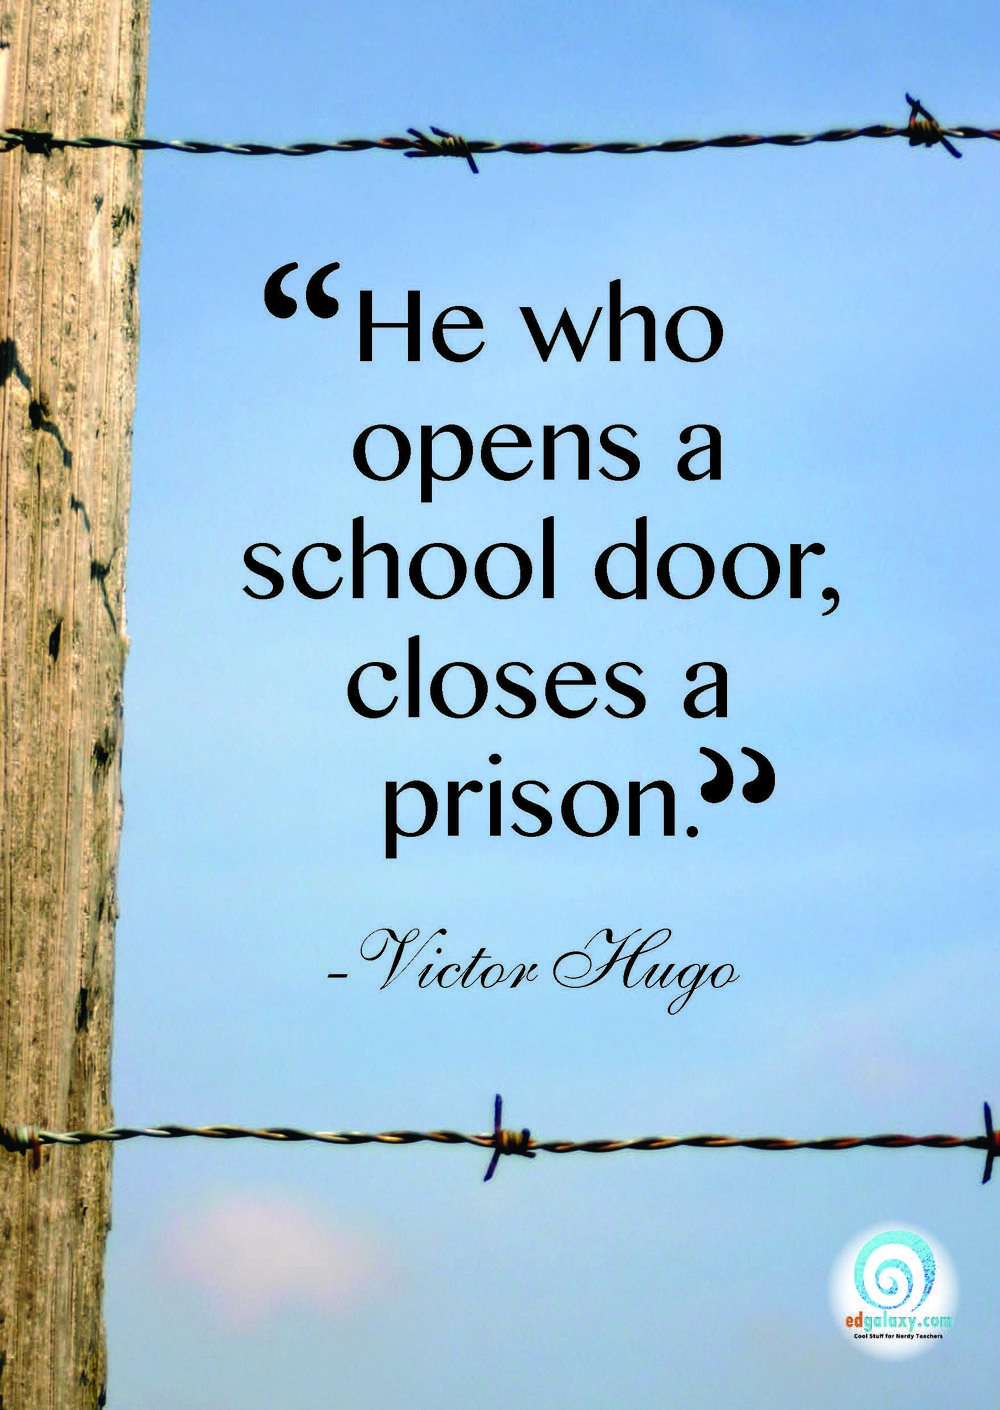 Prodigious Free Back To School Images Quotes Ny Quotes About School Daysquotes Posters Below Free Back To School Images Quotes Ny Quotes About School